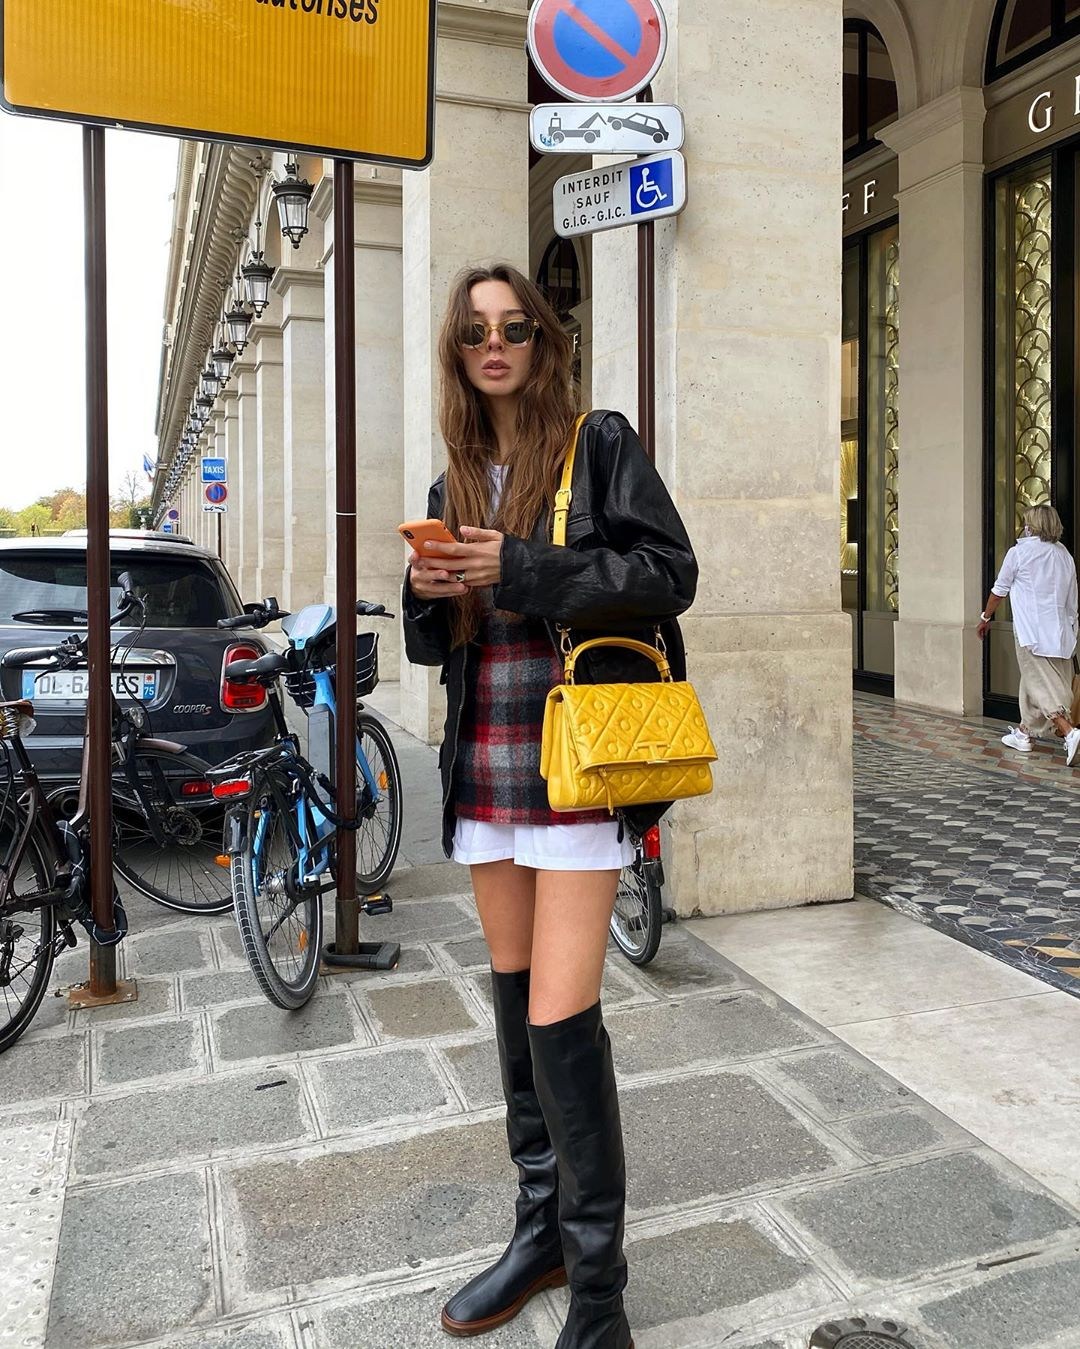 estelle-chemouny-tods-fall-2020-outfit-street-style